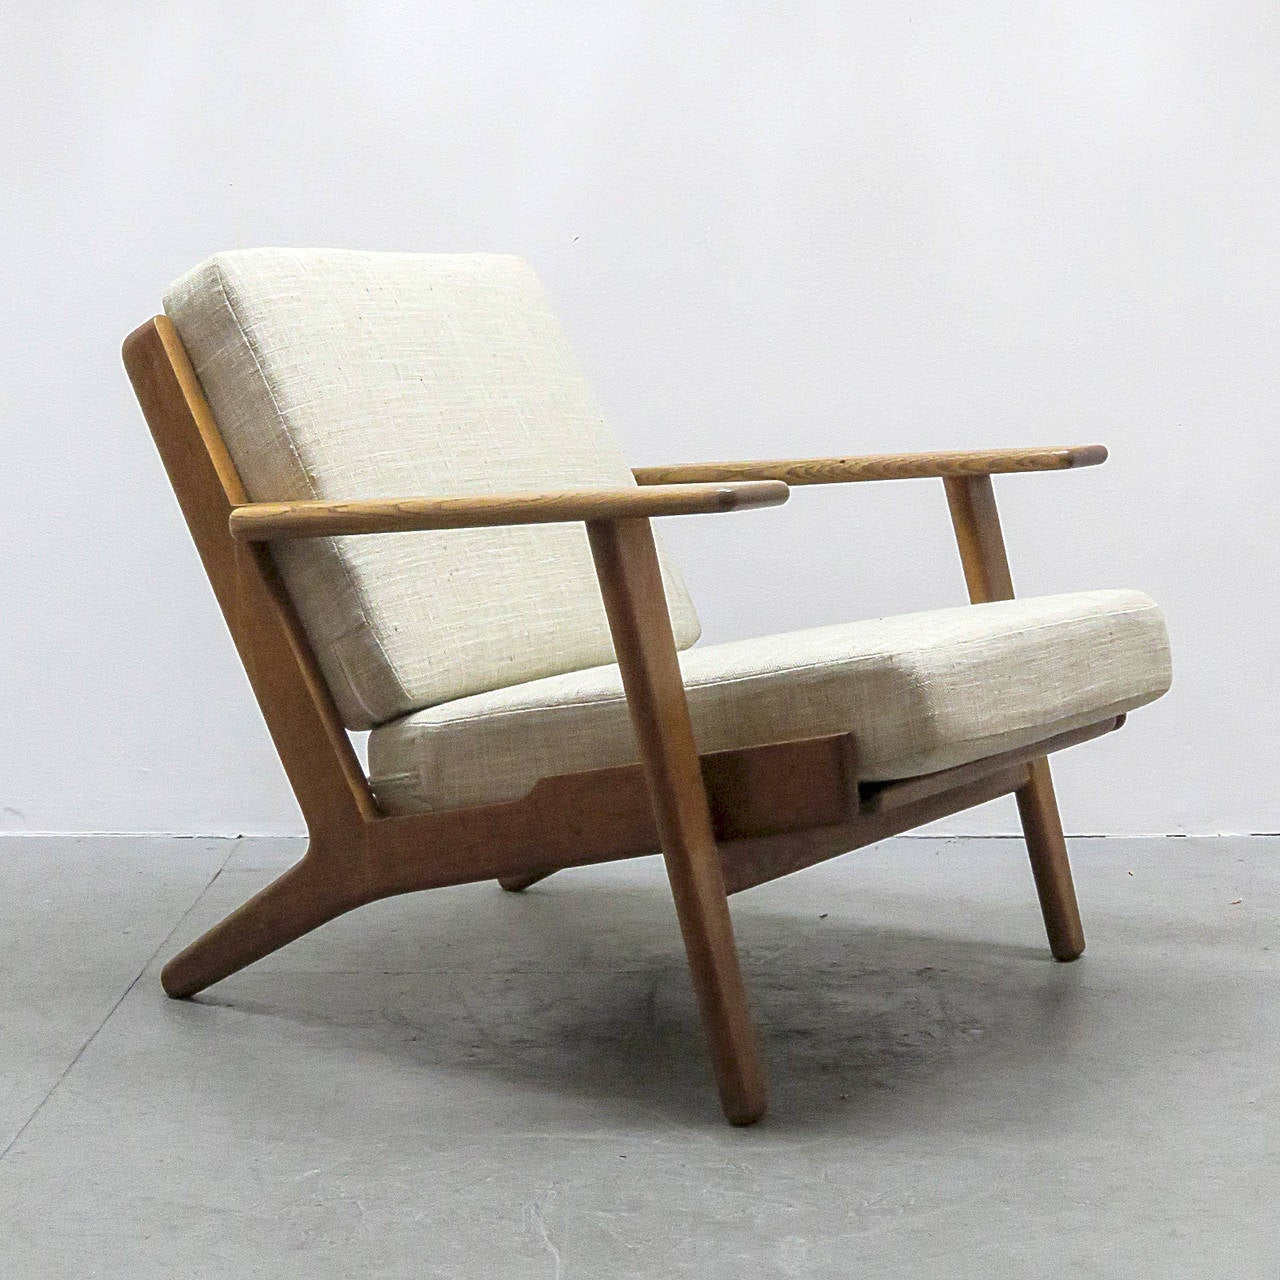 Hans Wegner Chair : hans j wegner ge 290 lounge chair at 1stdibs ~ Watch28wear.com Haus und Dekorationen